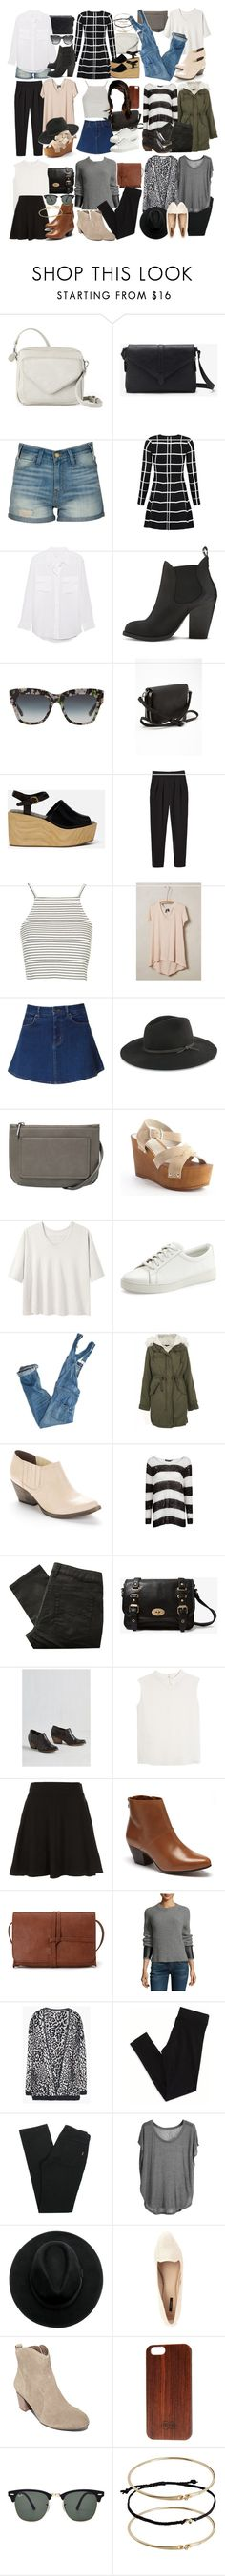 Crystal Reed Inspired Outfits (candid style) by veterization on Polyvore featuring rag & bone/JEAN, Chaser, MANGO, Left of Center, Alexander Yamaguchi, Topshop, Monki, American Eagle Outfitters, Zara and Great Plains